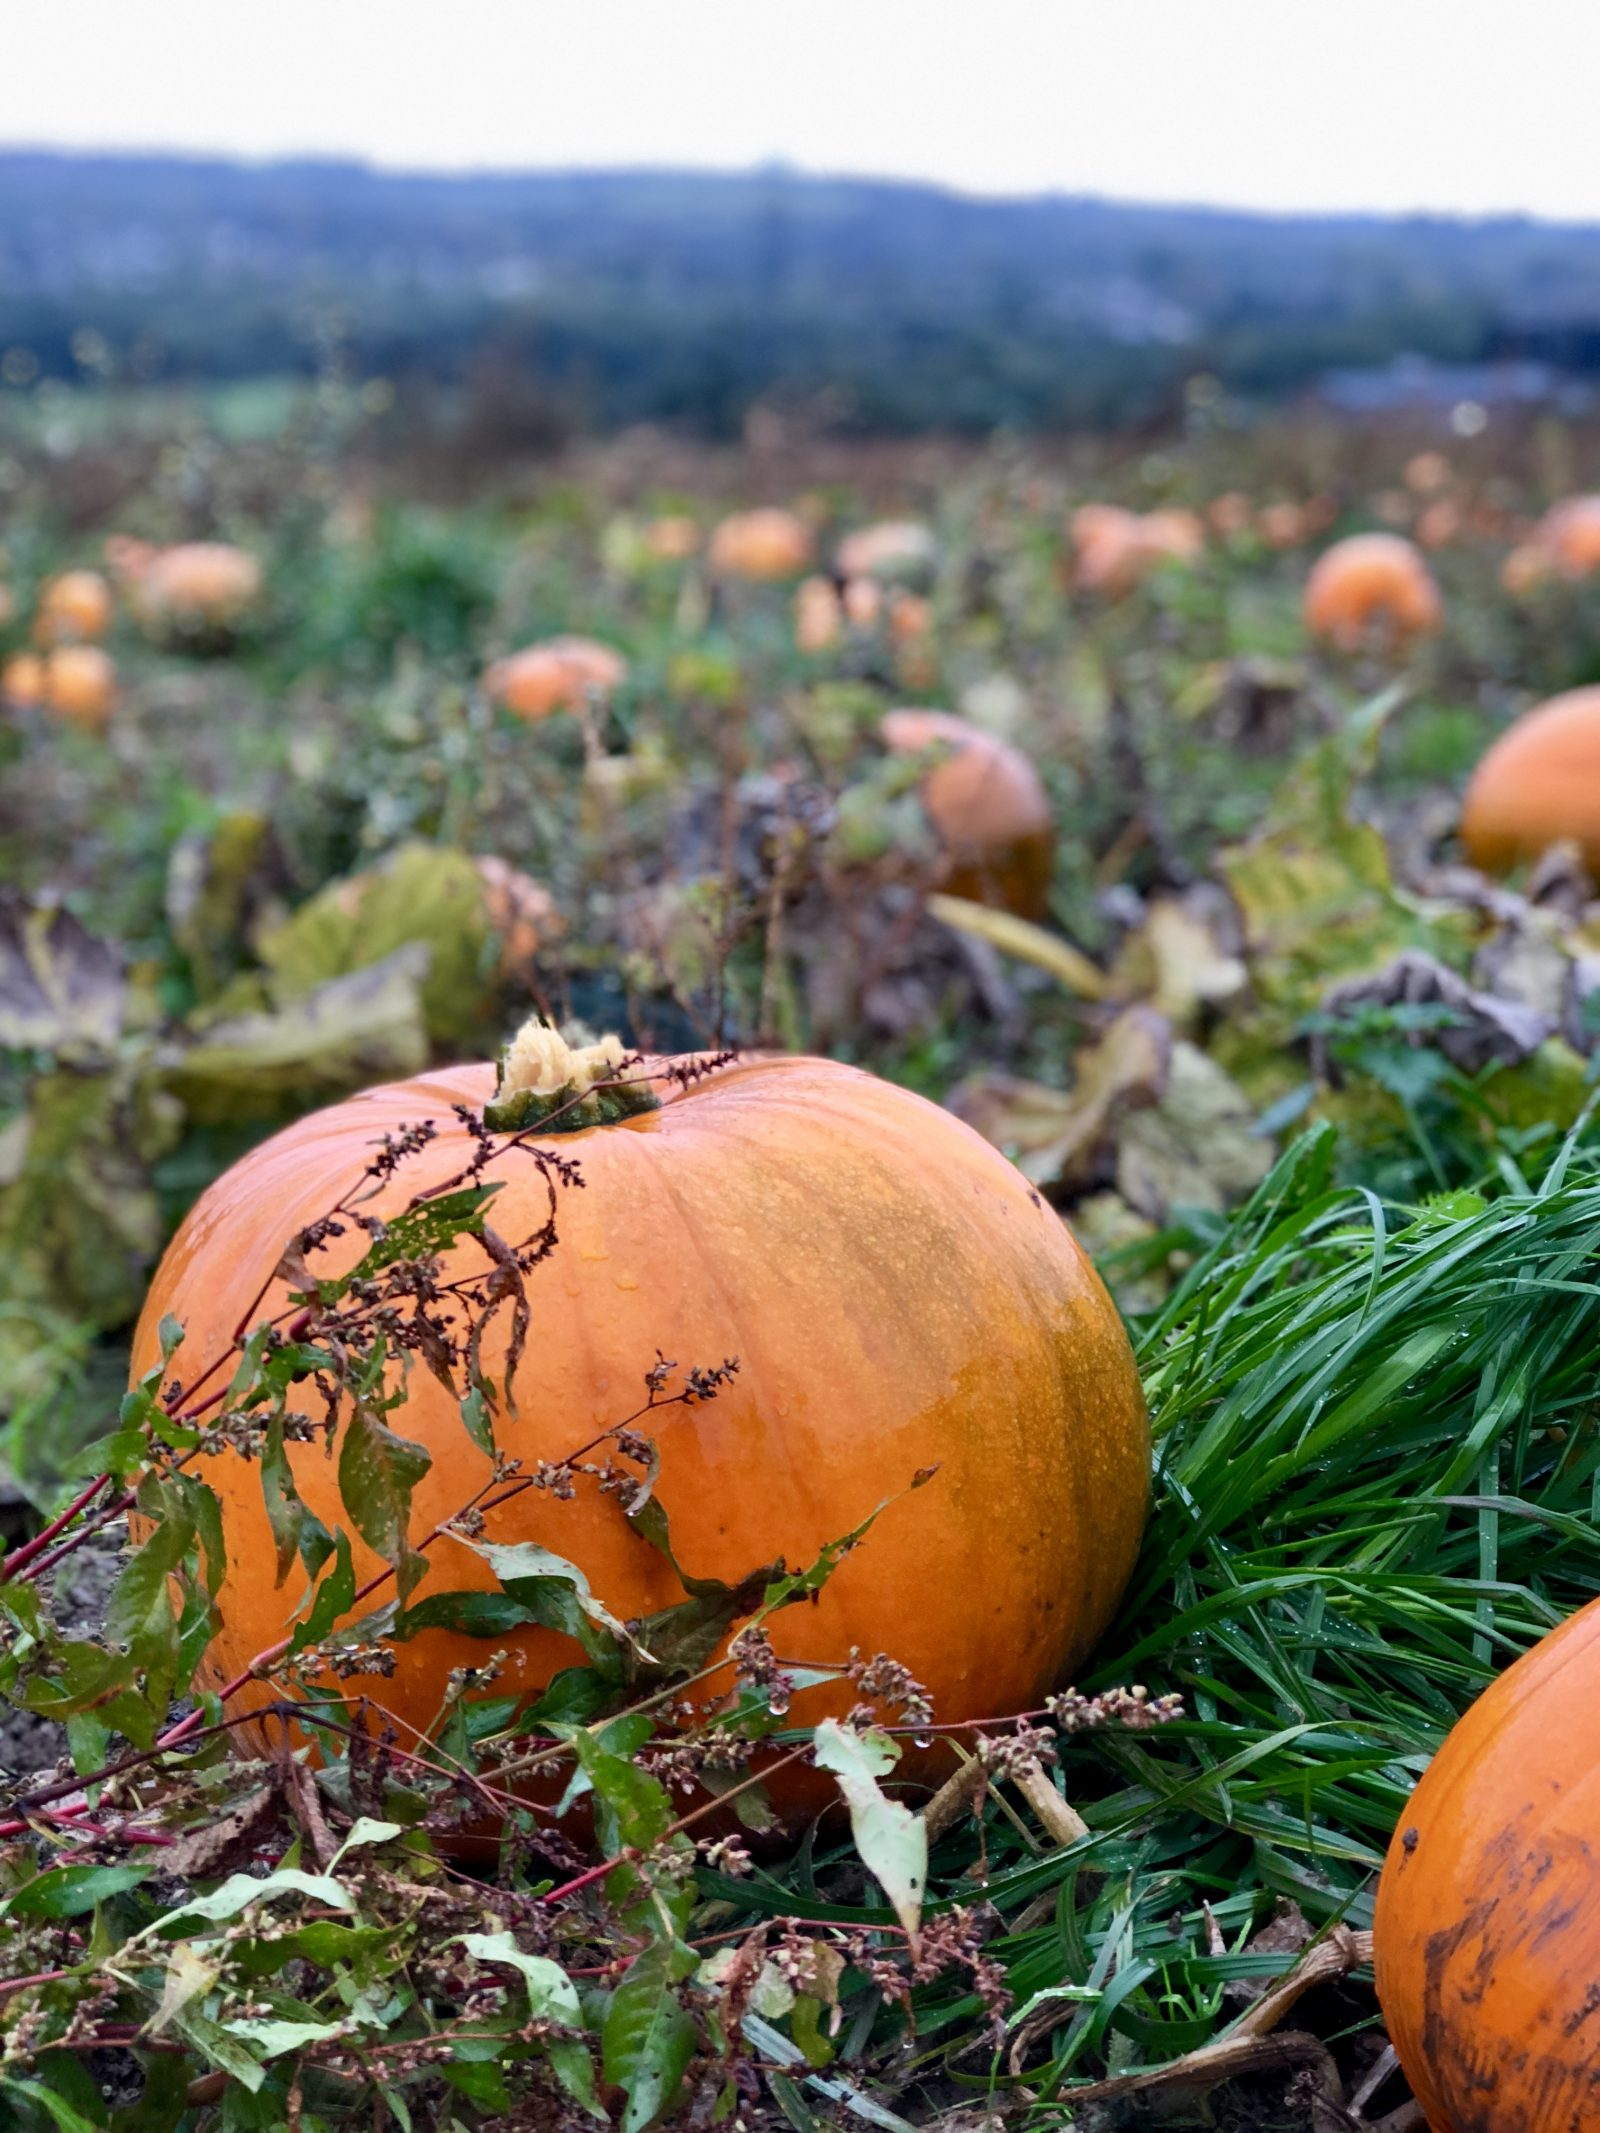 Pumpkin Picking, pumpkin patch, pumpkins, day in the Life, Penyfodau Fawr Farm, pick your own, memories, days out, family days out, south wales, Swansea, dear diary, autumn,